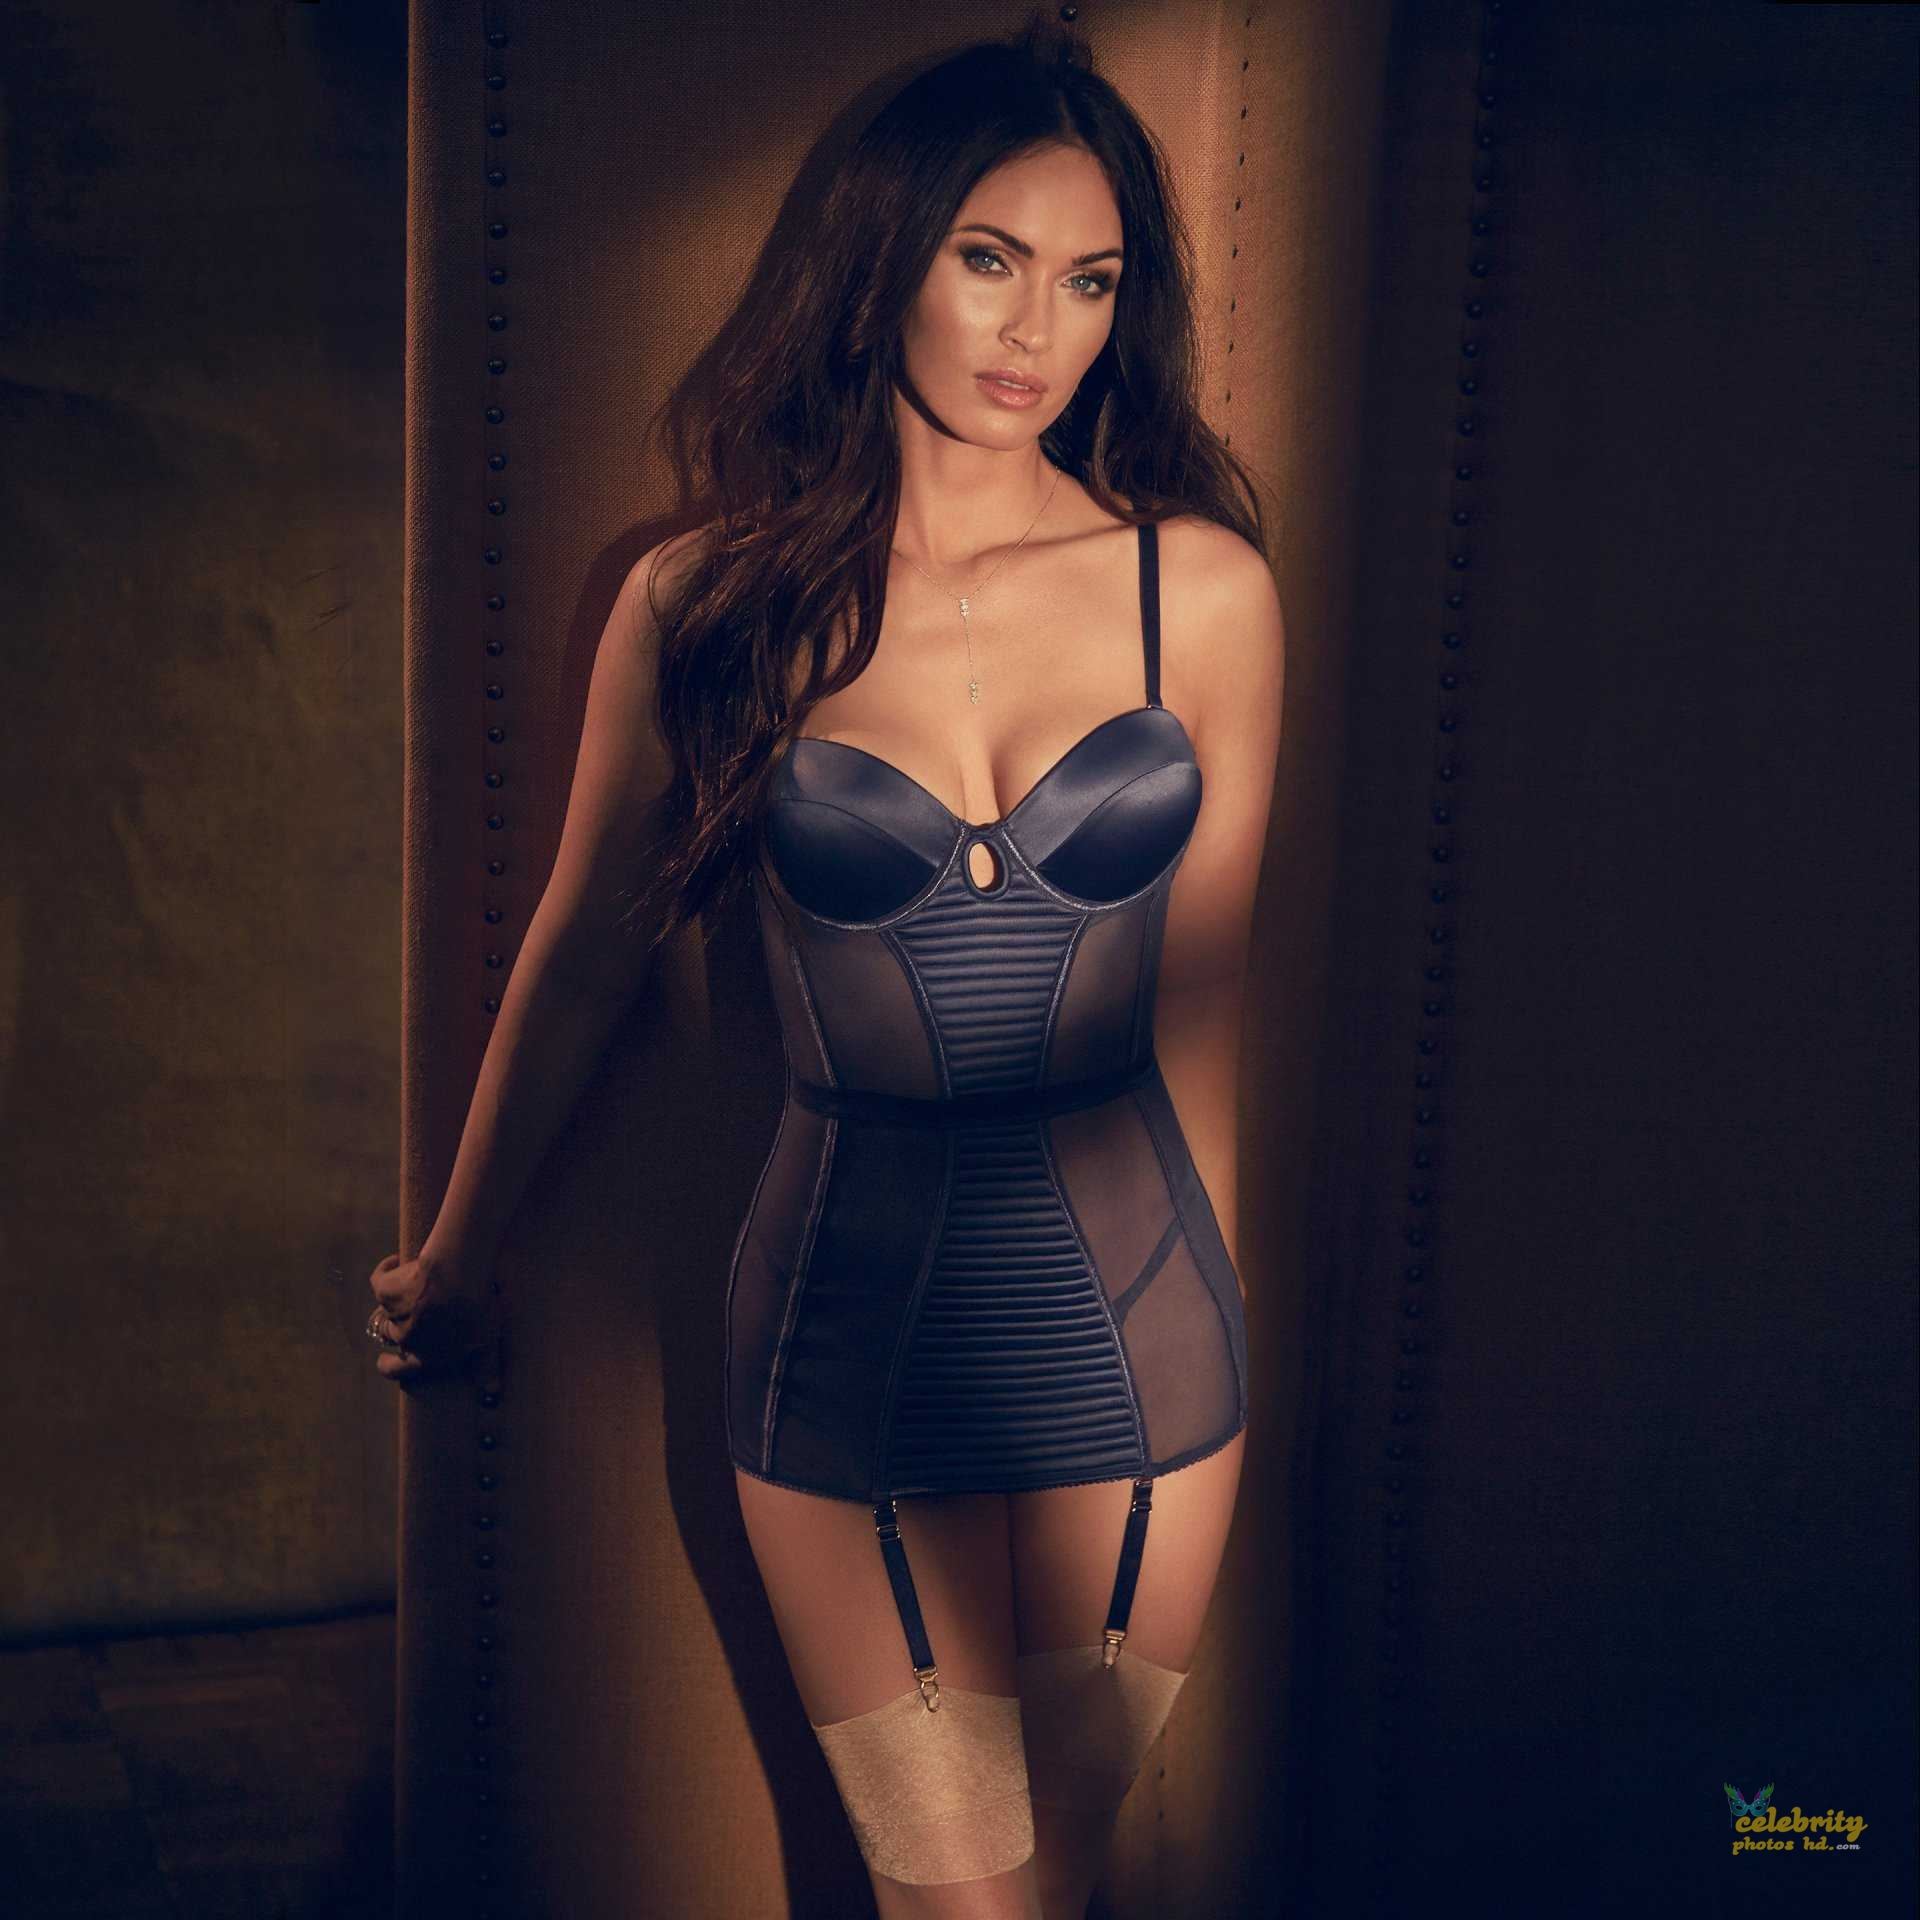 Megan Fox in Fredericks's of Hollywood Lingerie Photoshoot (5)